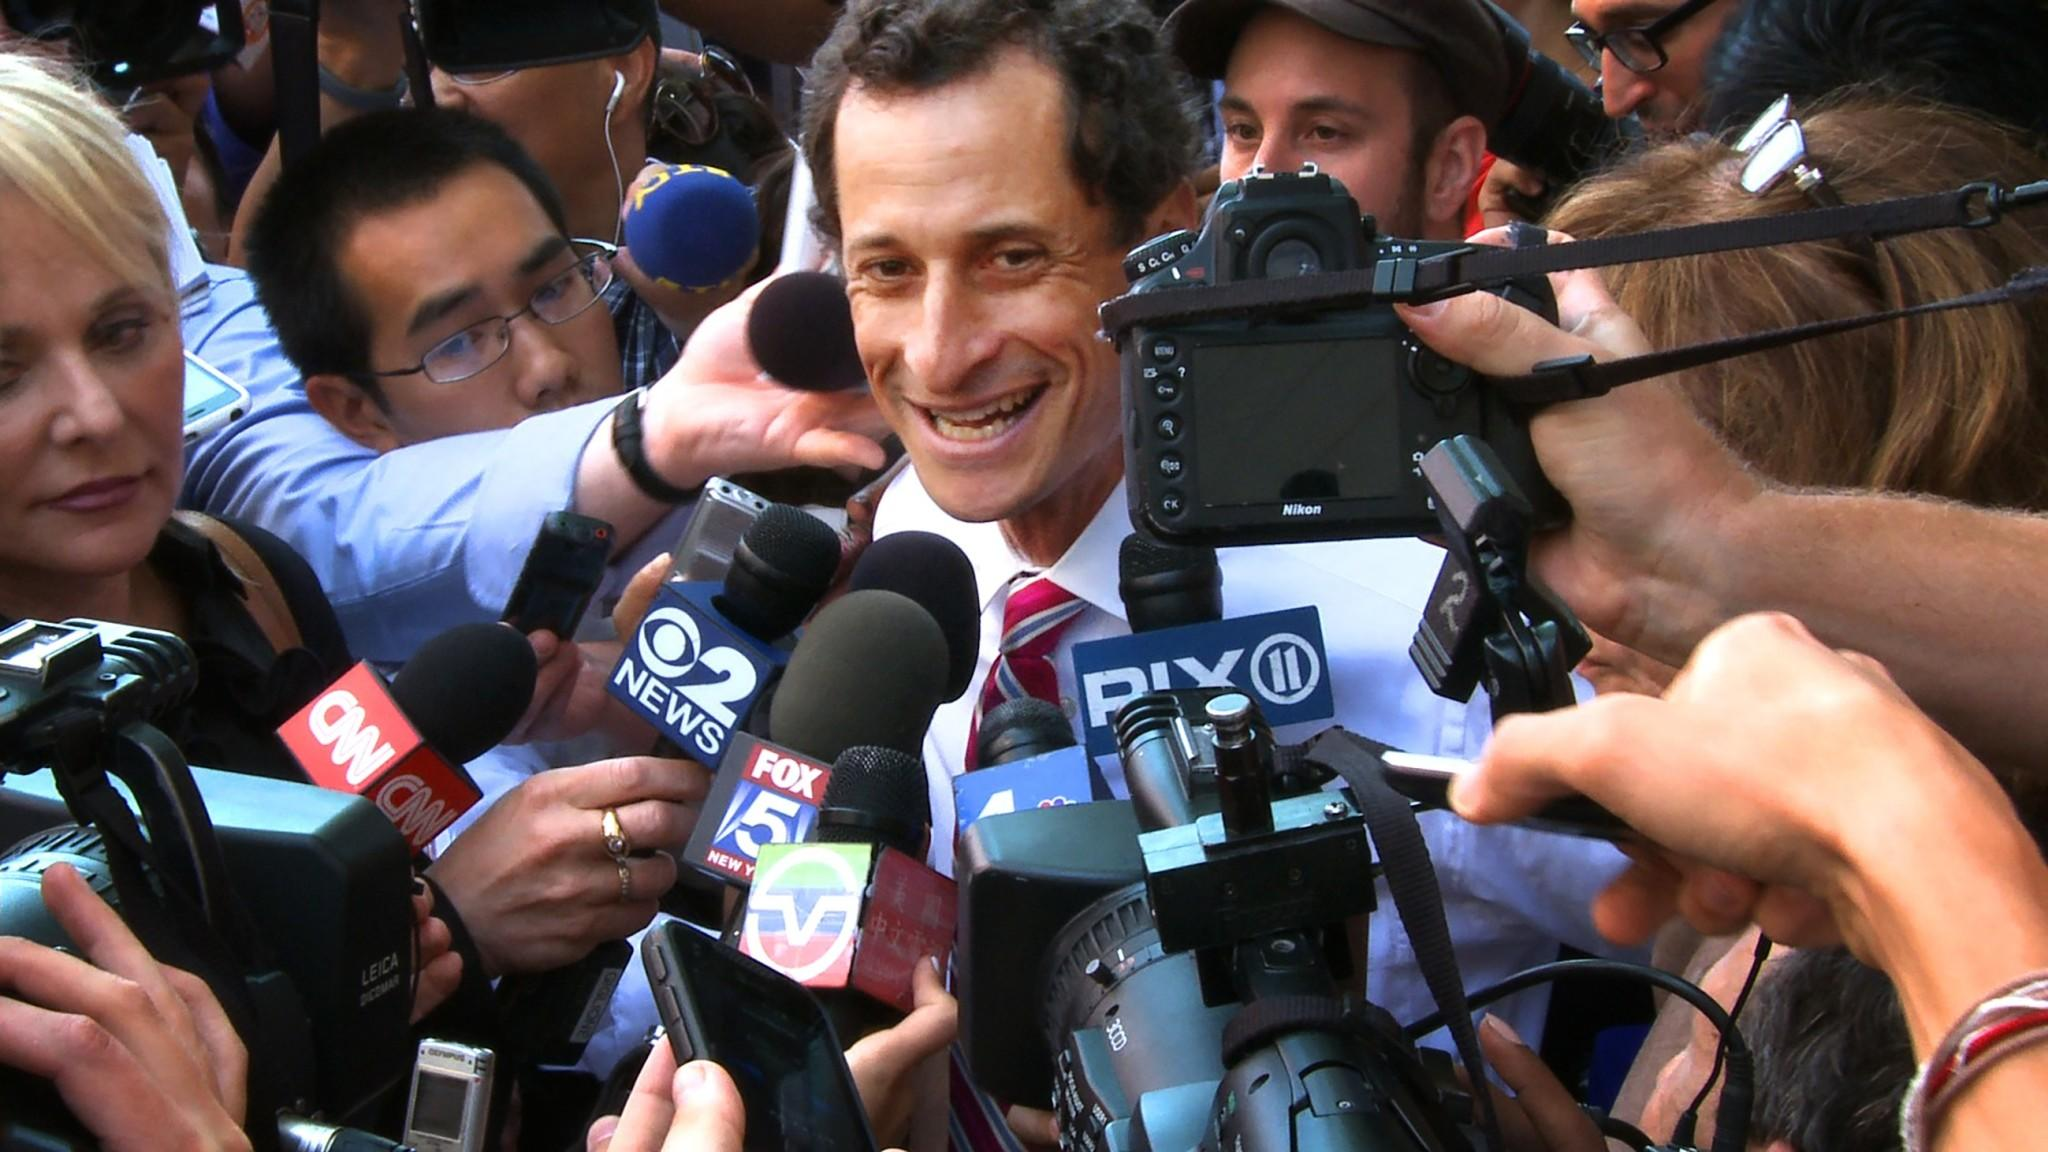 Der Fall Anthony Weiner